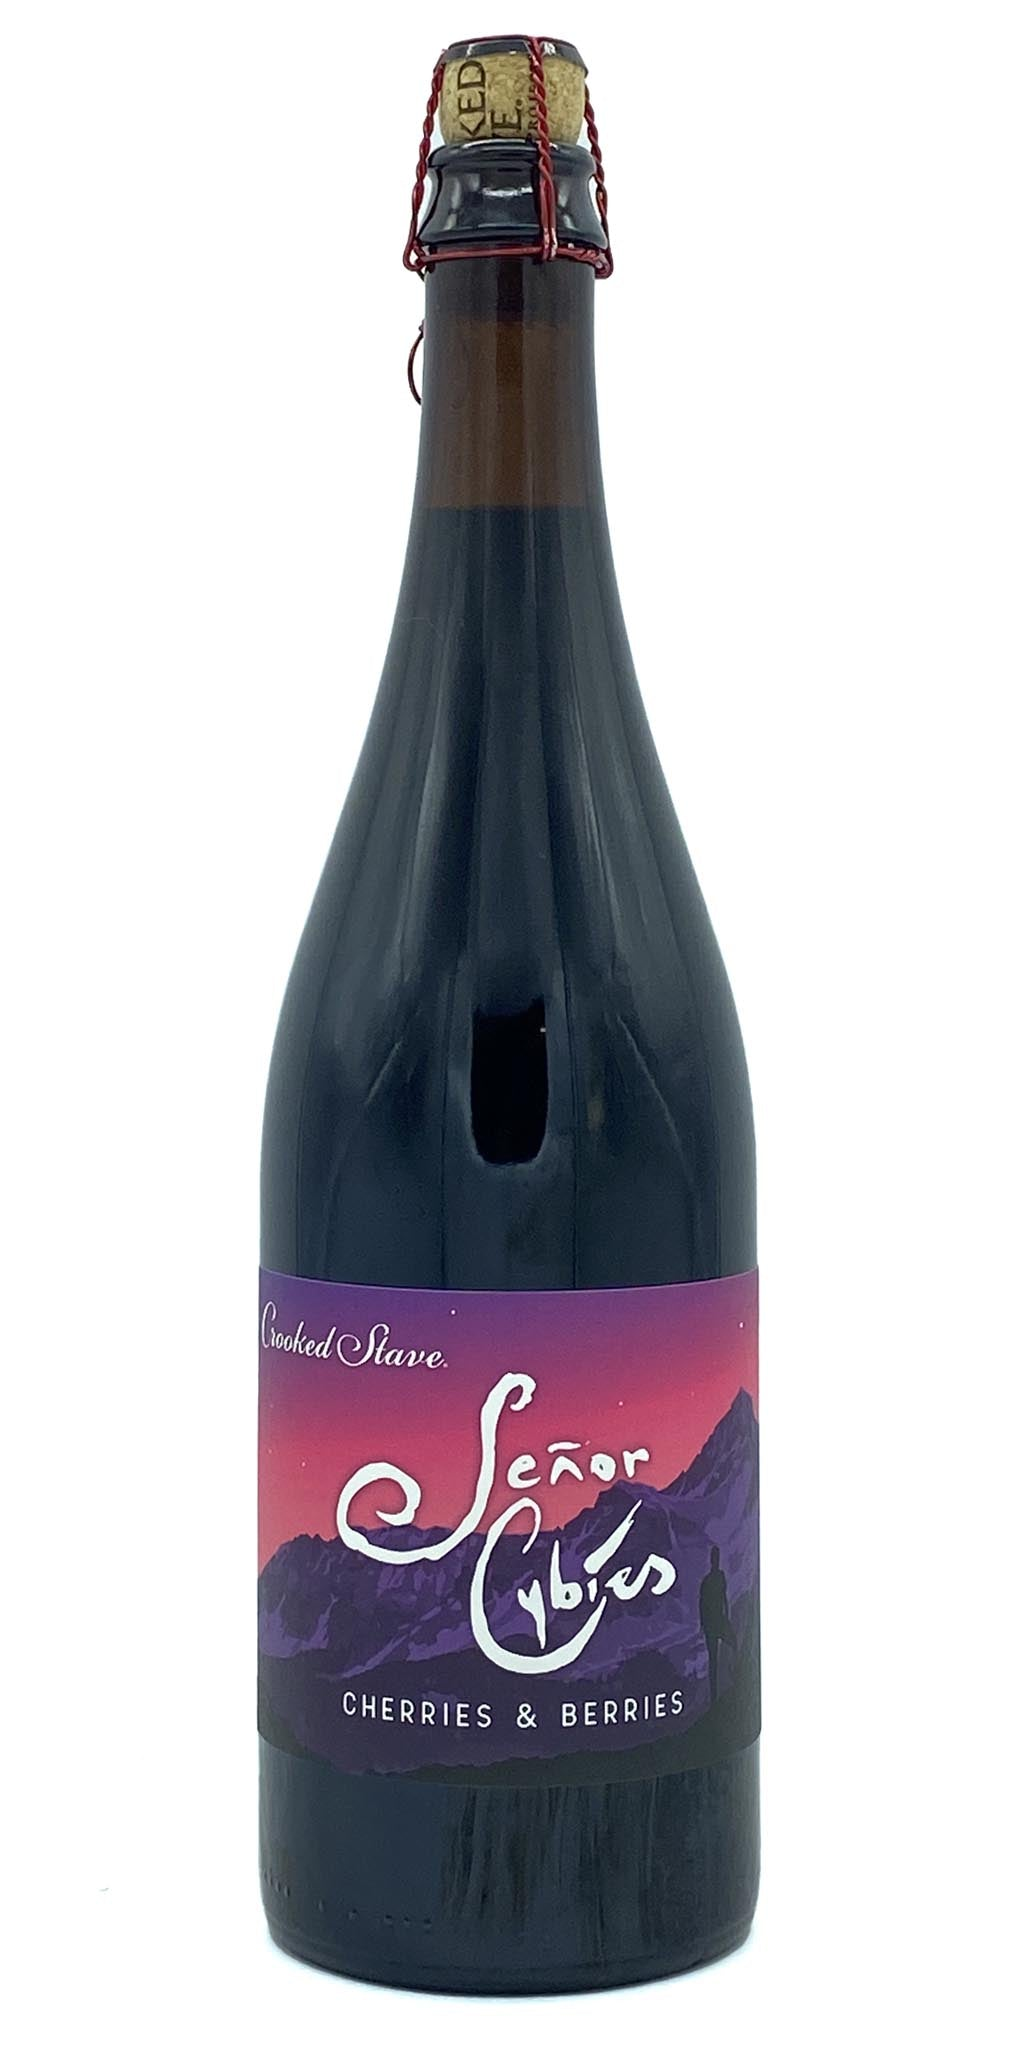 Crooked Stave - Señor Cybies Cherries And Berries 2019